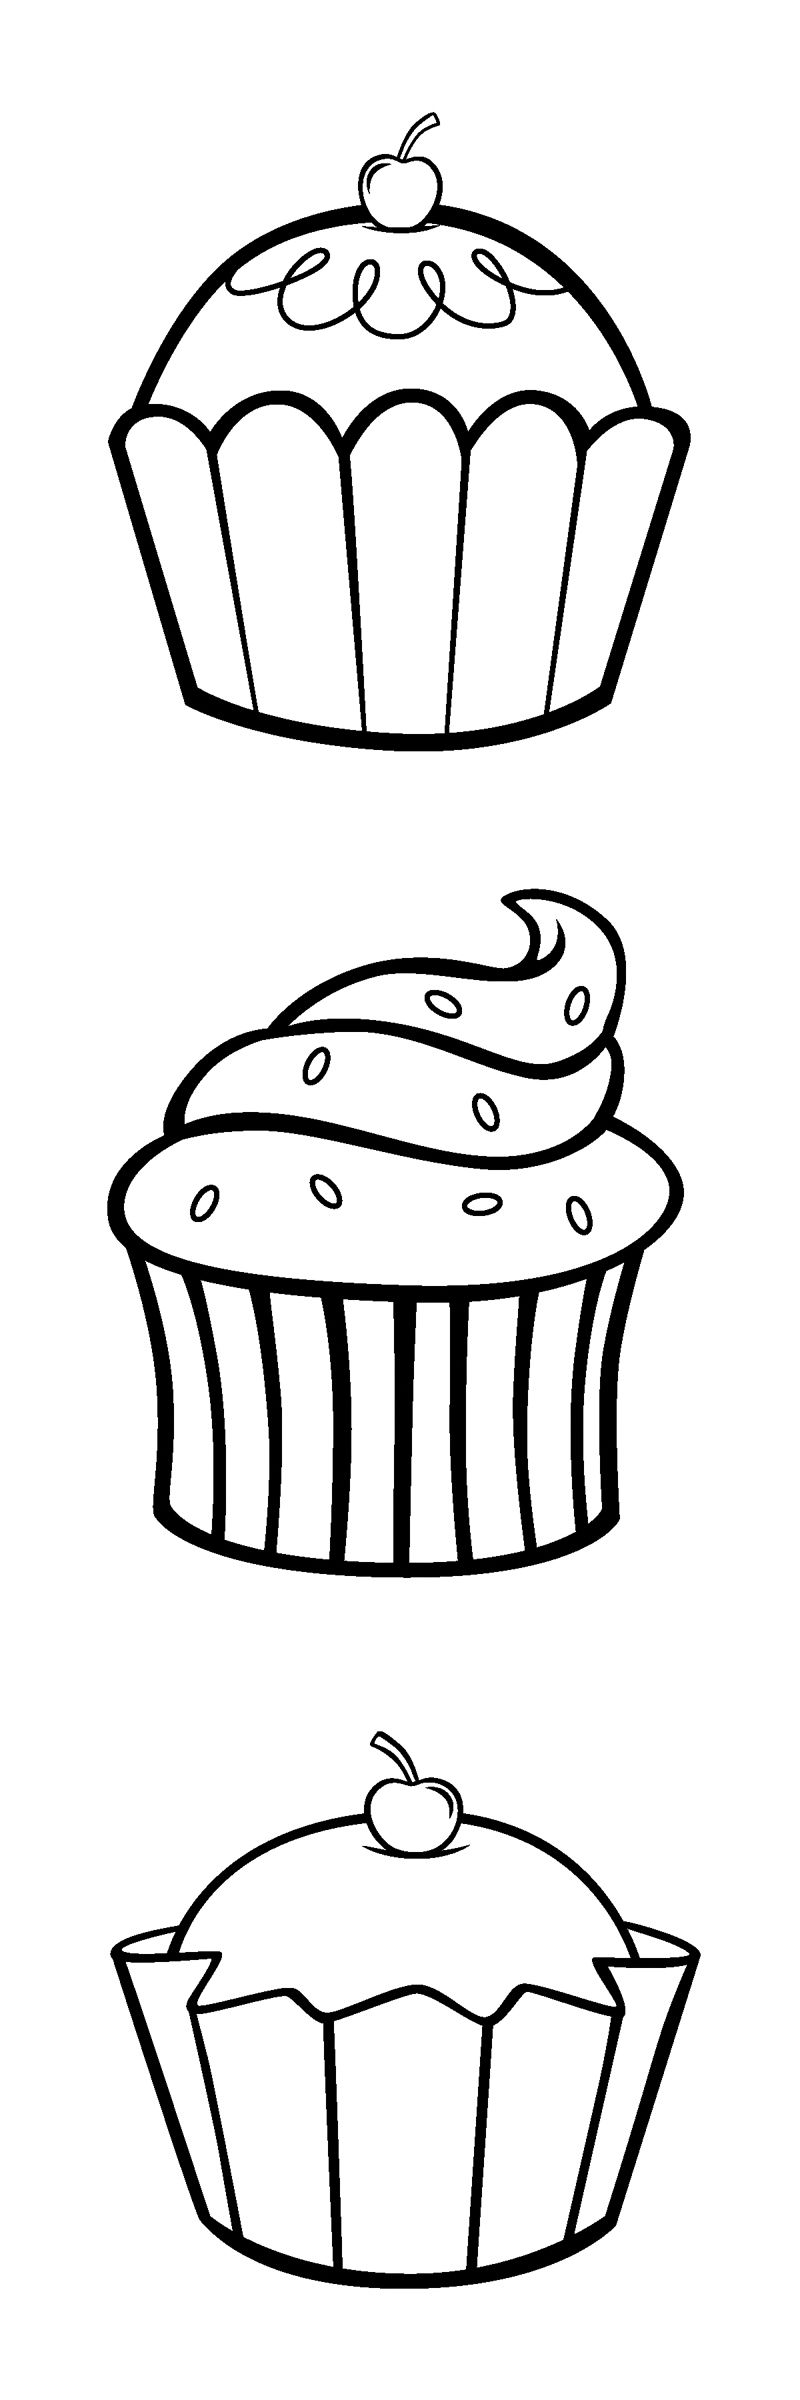 If You Can Print This Pic Of Cupcakes Cuz Their Easy And Fun To